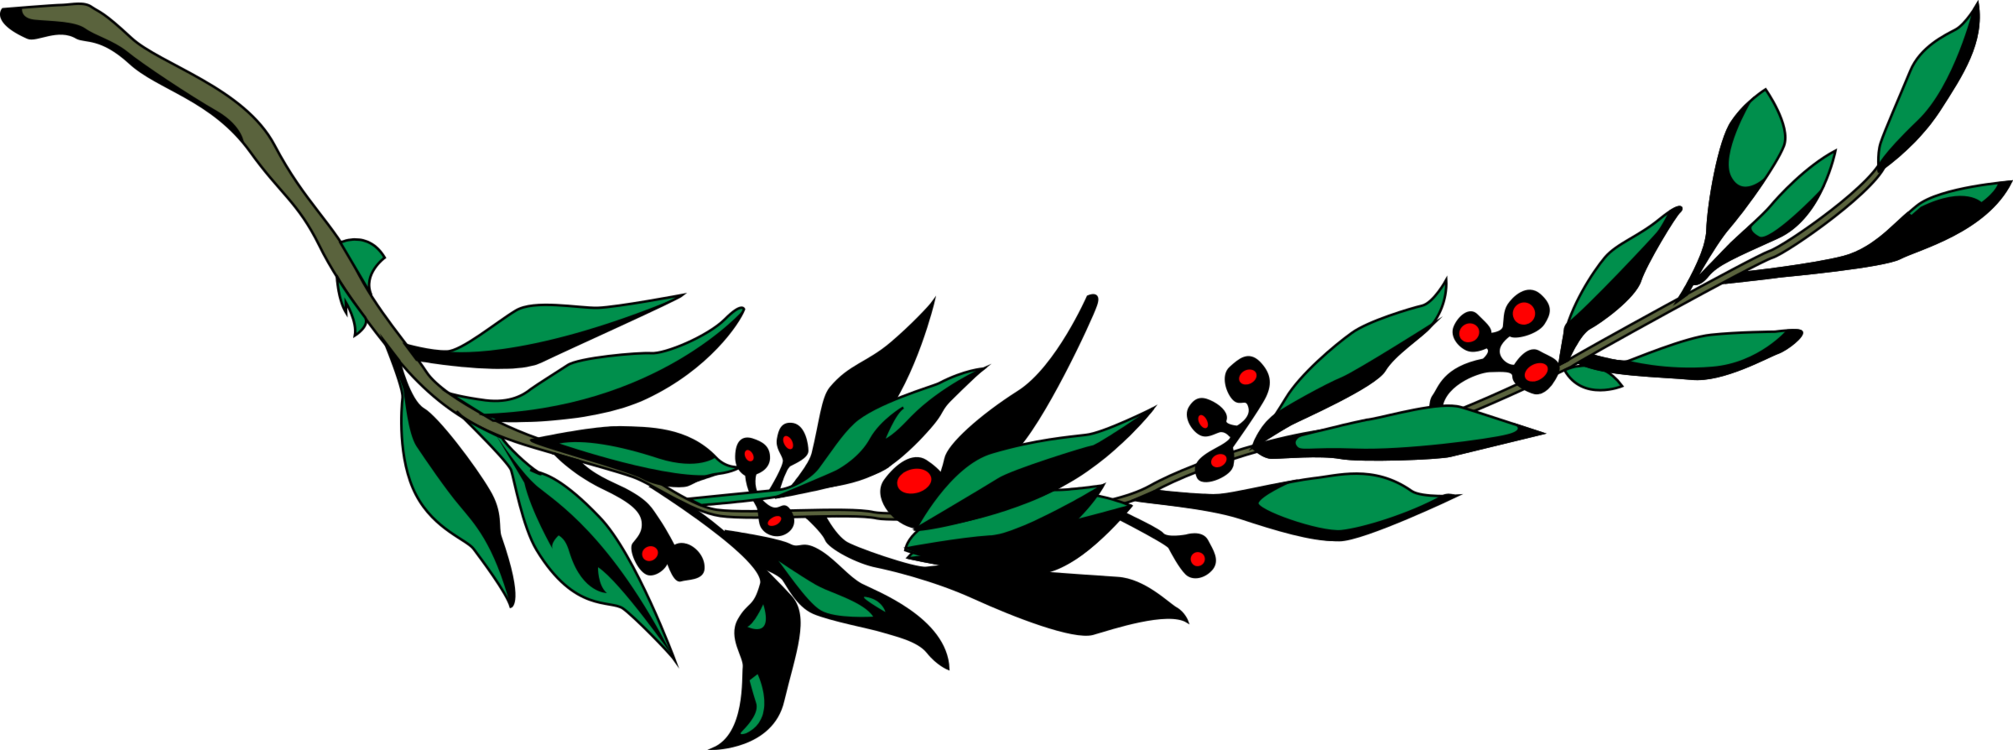 Wreath bay branch computer. Laurel clipart ivy clipart transparent library